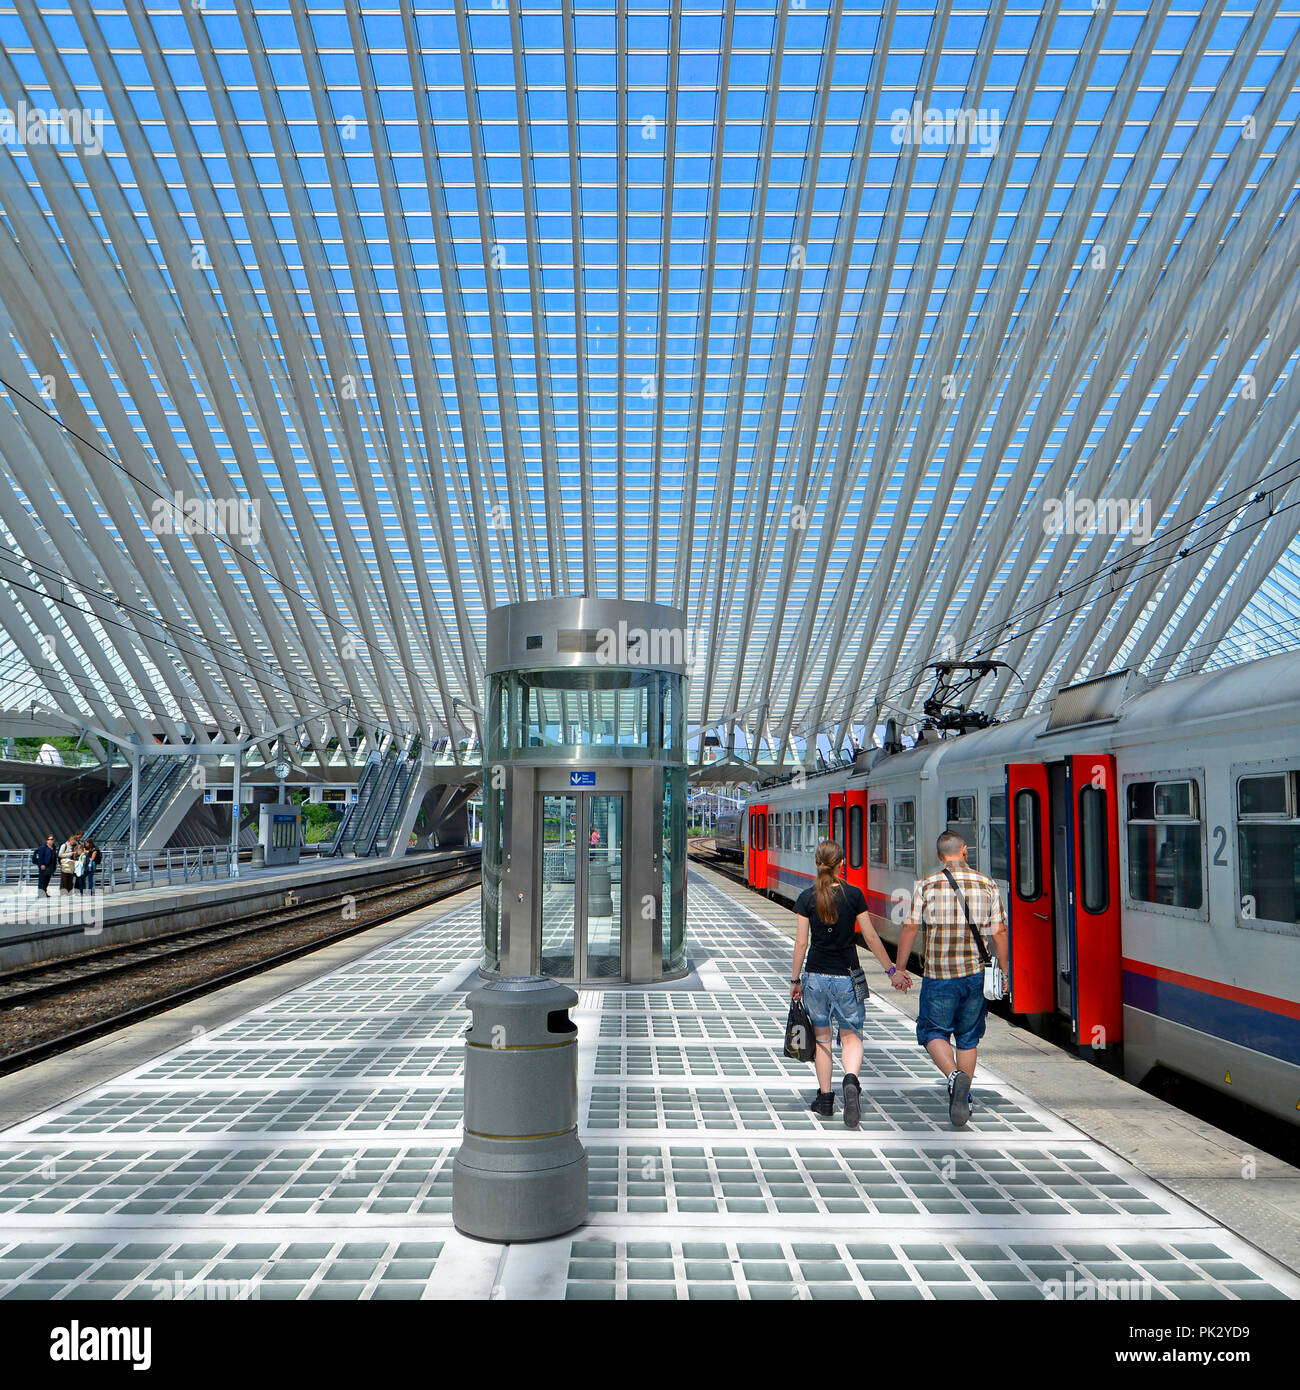 Young couple man & woman walking alone holding hands long train station platform Liège Belgium modern building glass roof ceiling blue sky summer day - Stock Image